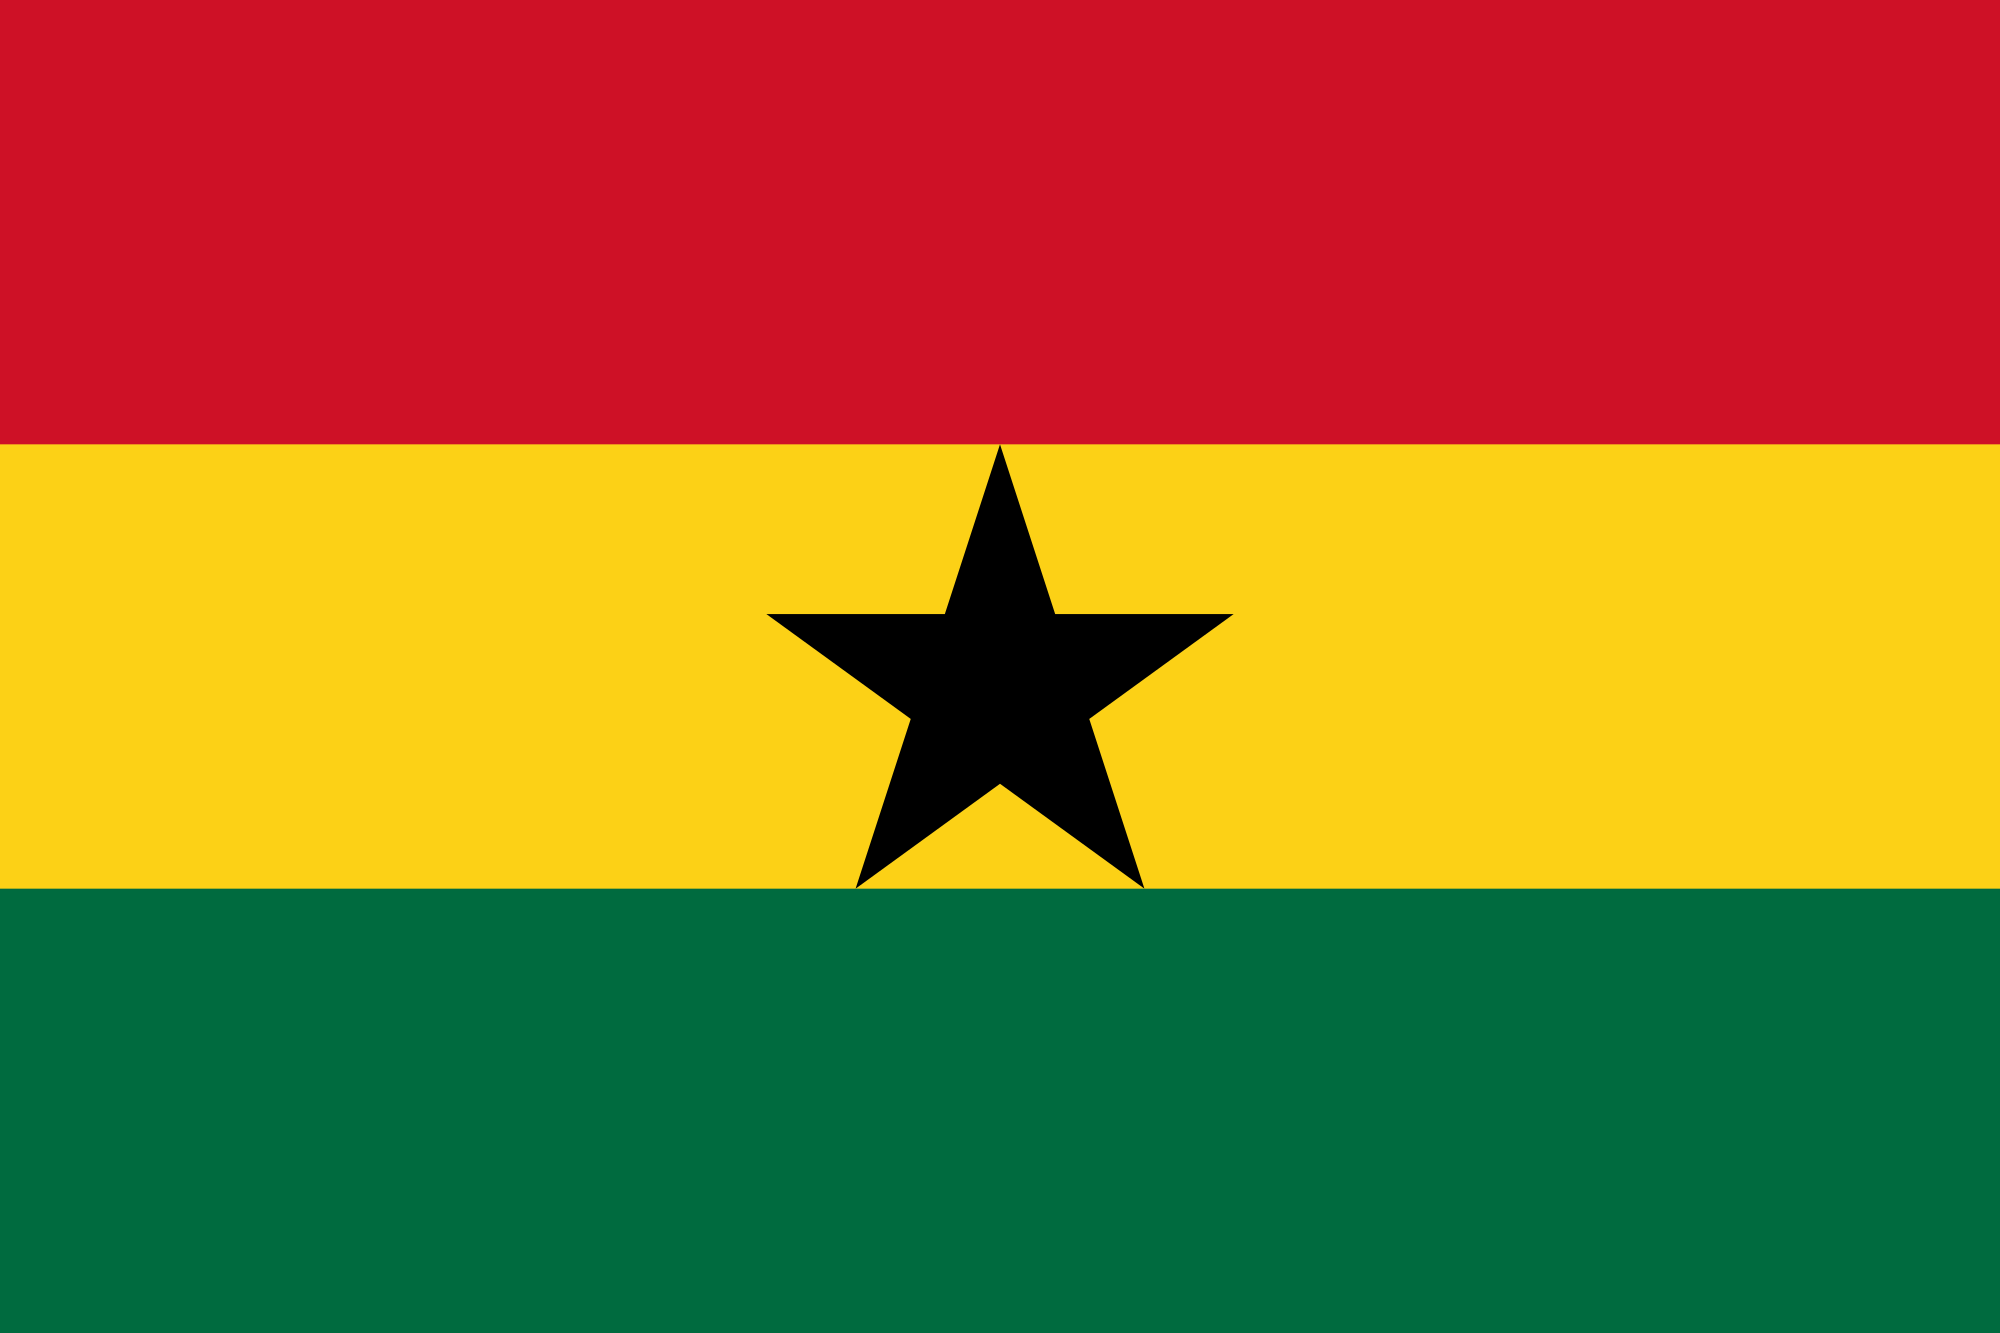 National Flag of Ghana Public Domain, https://commons.wikimedia.org/w/index.php?curid=343073